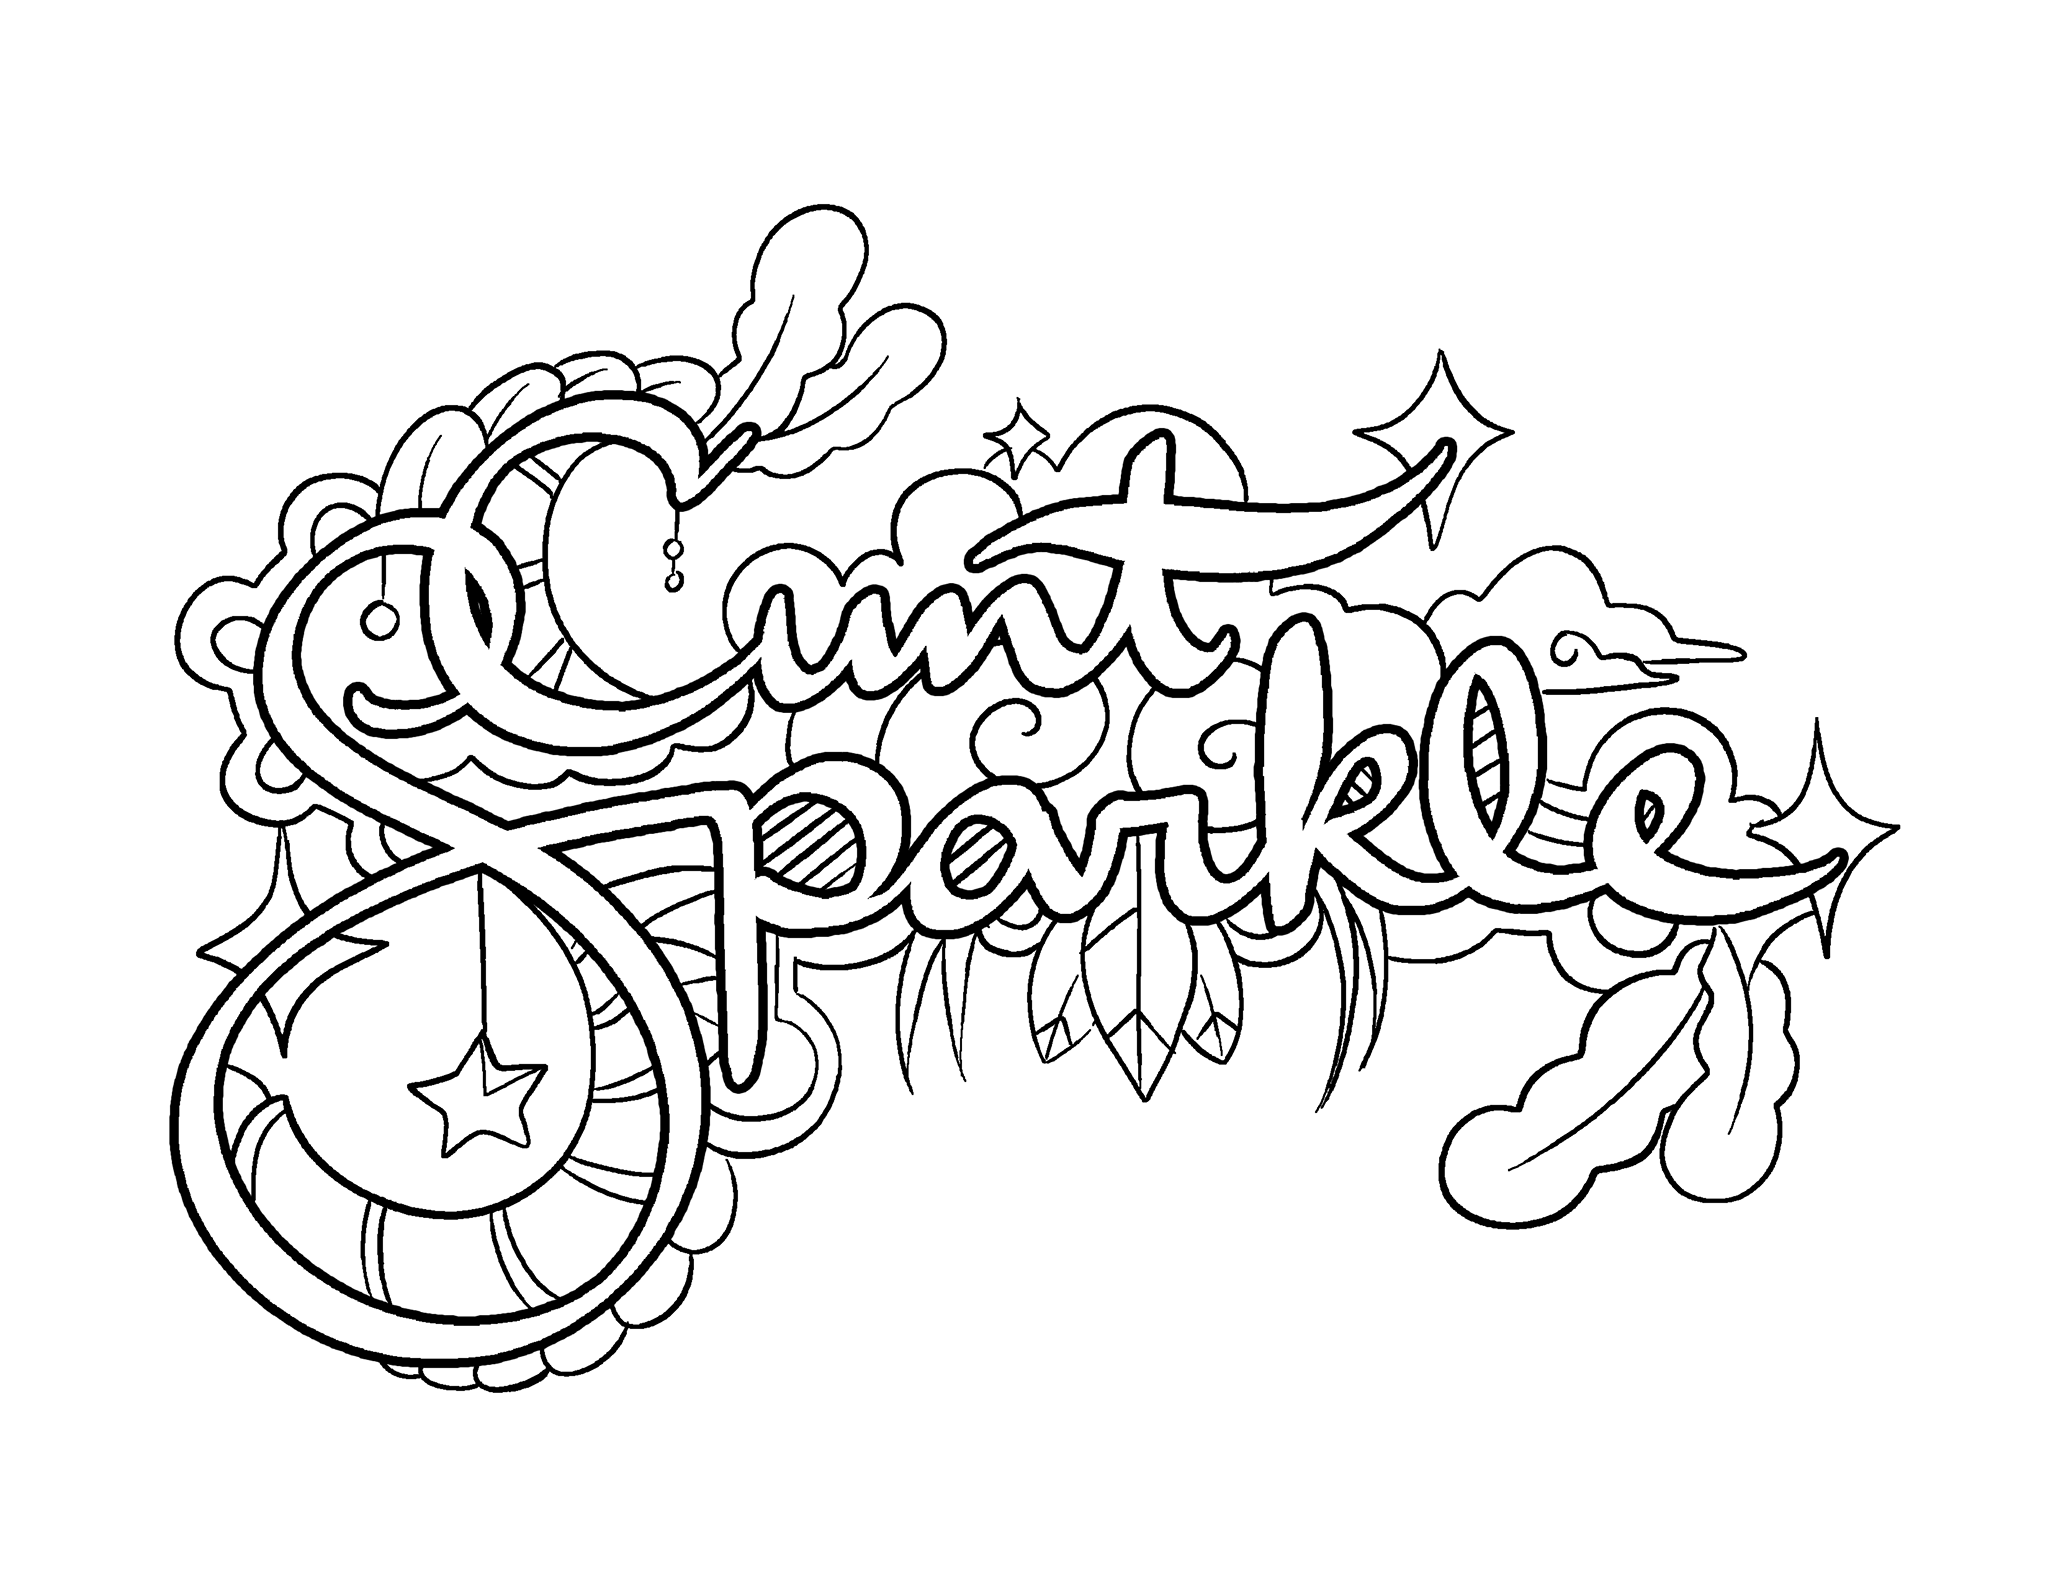 sparkle coloring page by colorful language 2015 posted